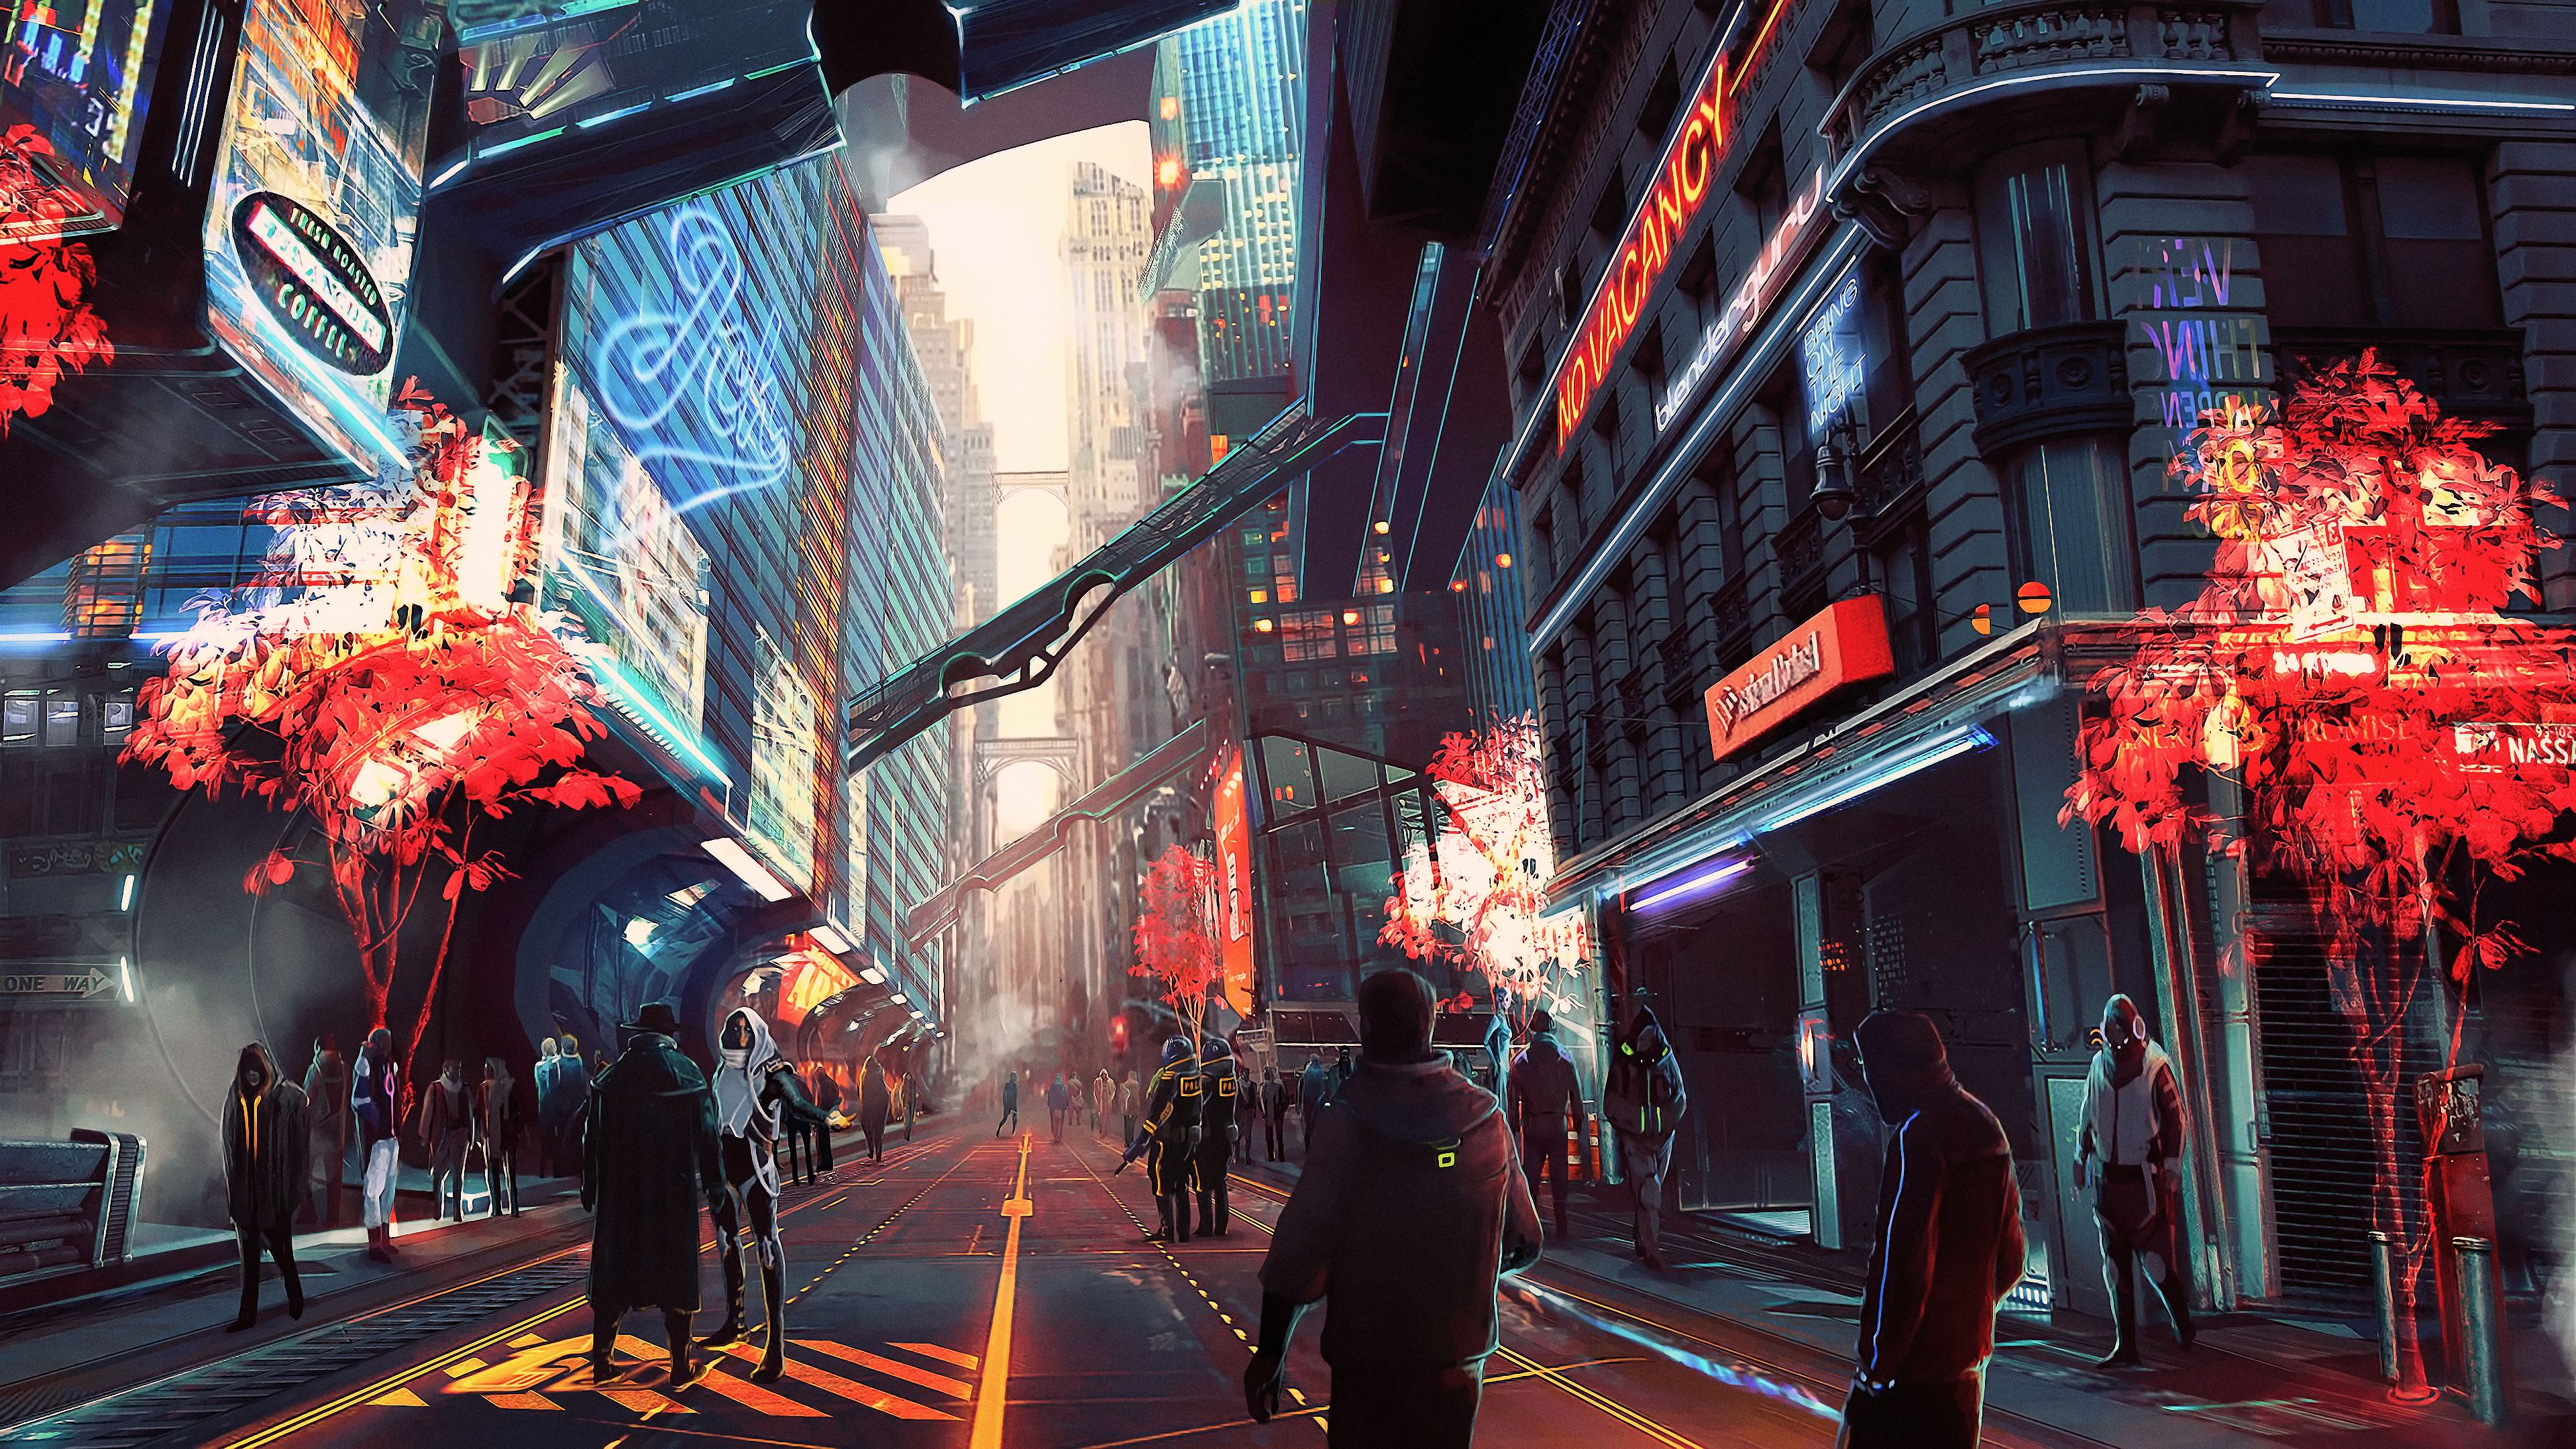 Cyberpunk City Future Digital Art 4k Hd Wallpapers Digital Art Wallpapers Cyberpunk Wallpapers City Wallpapers A In 2020 Cyberpunk City Sci Fi City Futuristic City